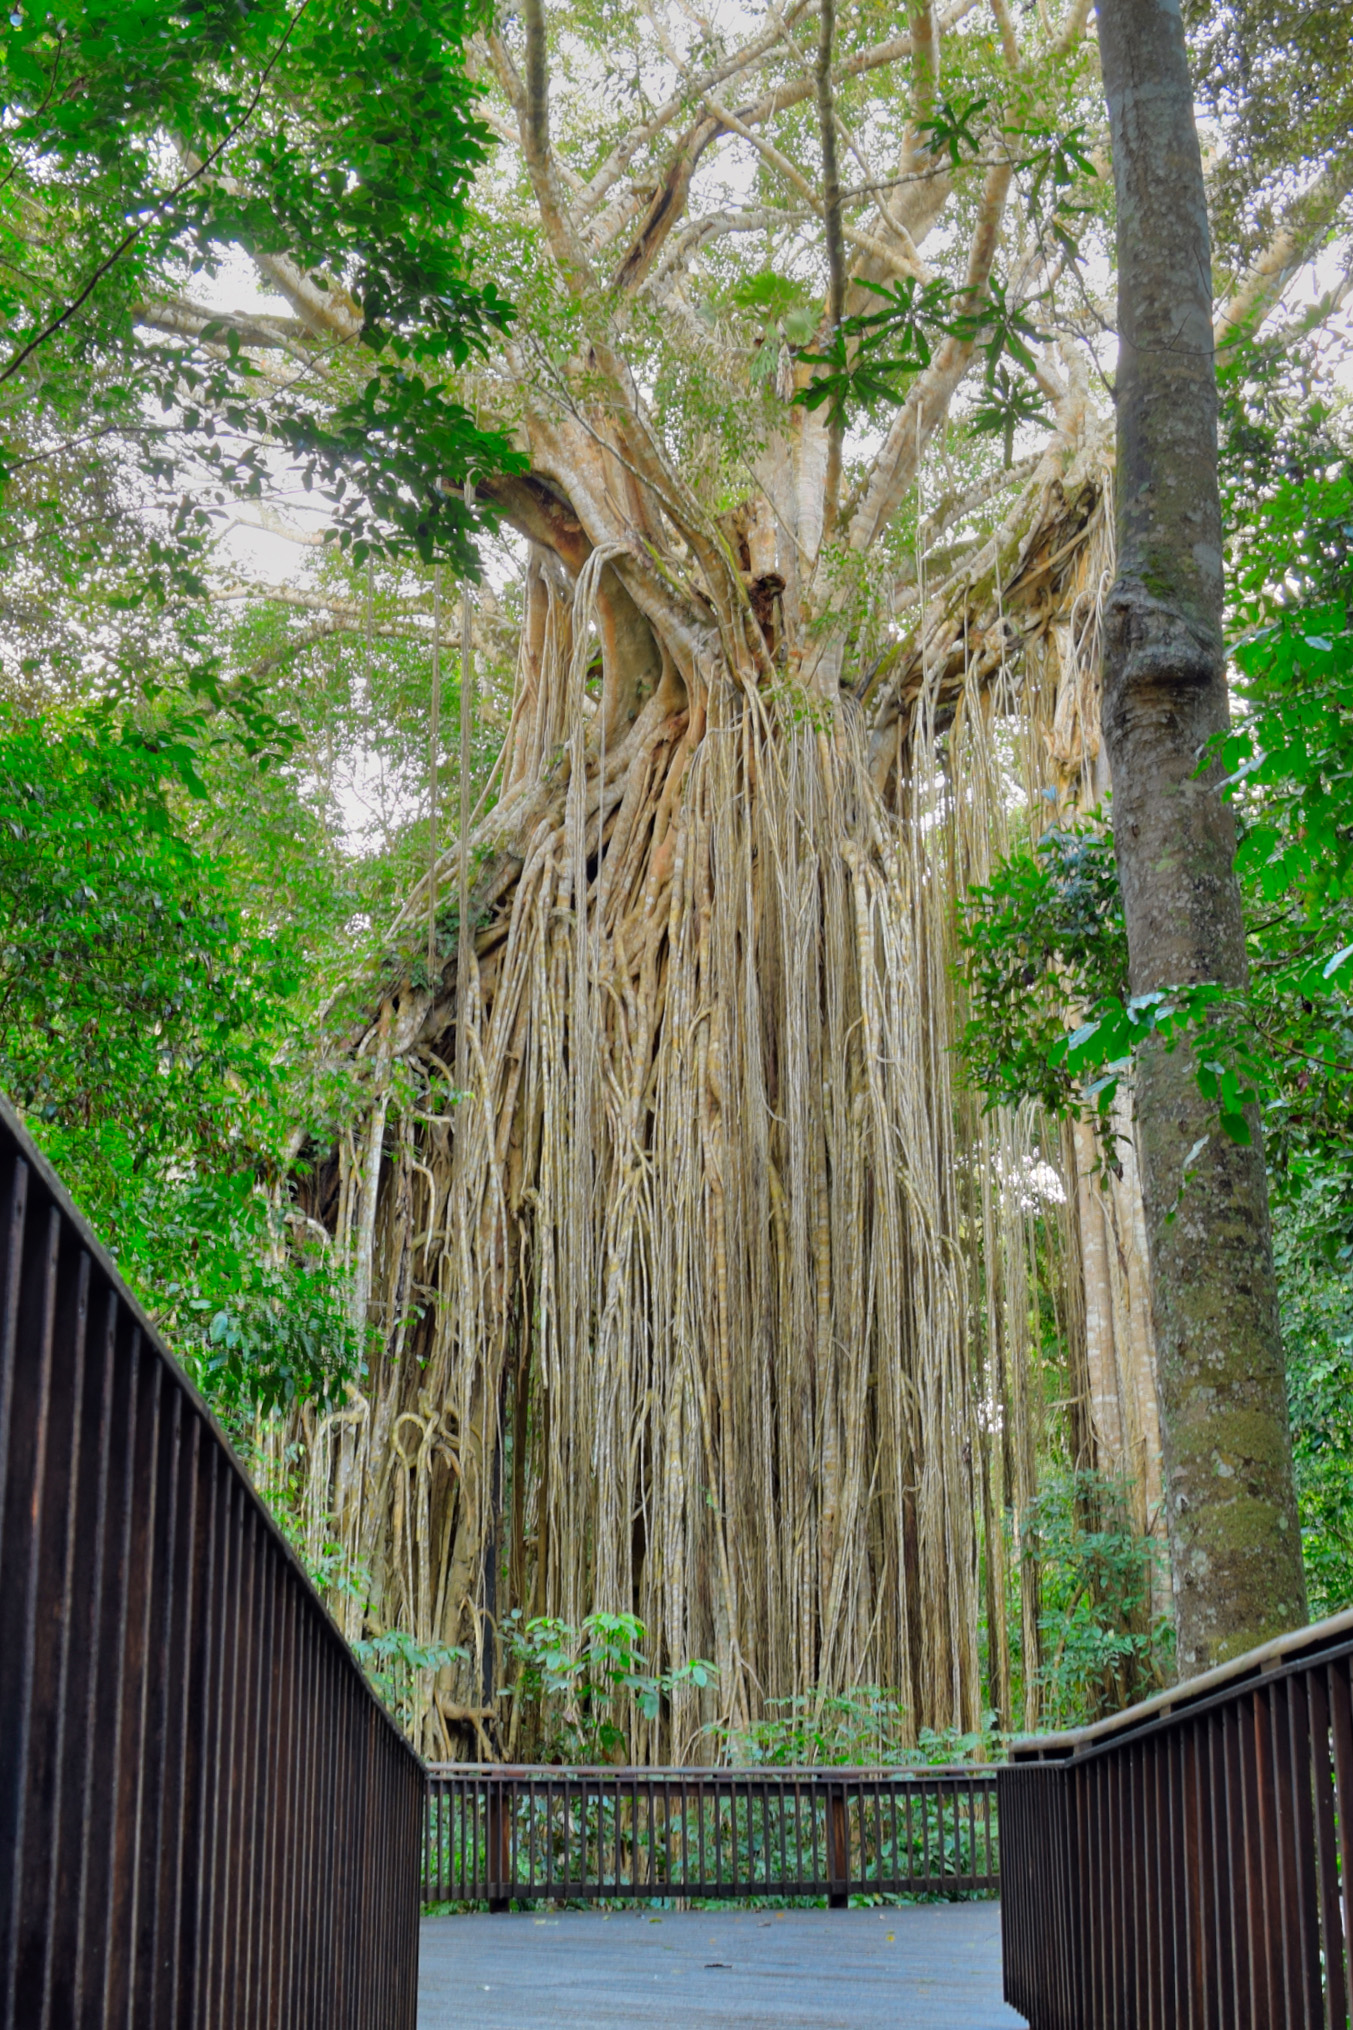 The Curtain Fig tree near Yungaburra is a must see if you are on the Tablelands. The curtain of aerial roots drops 15 metres the ground.